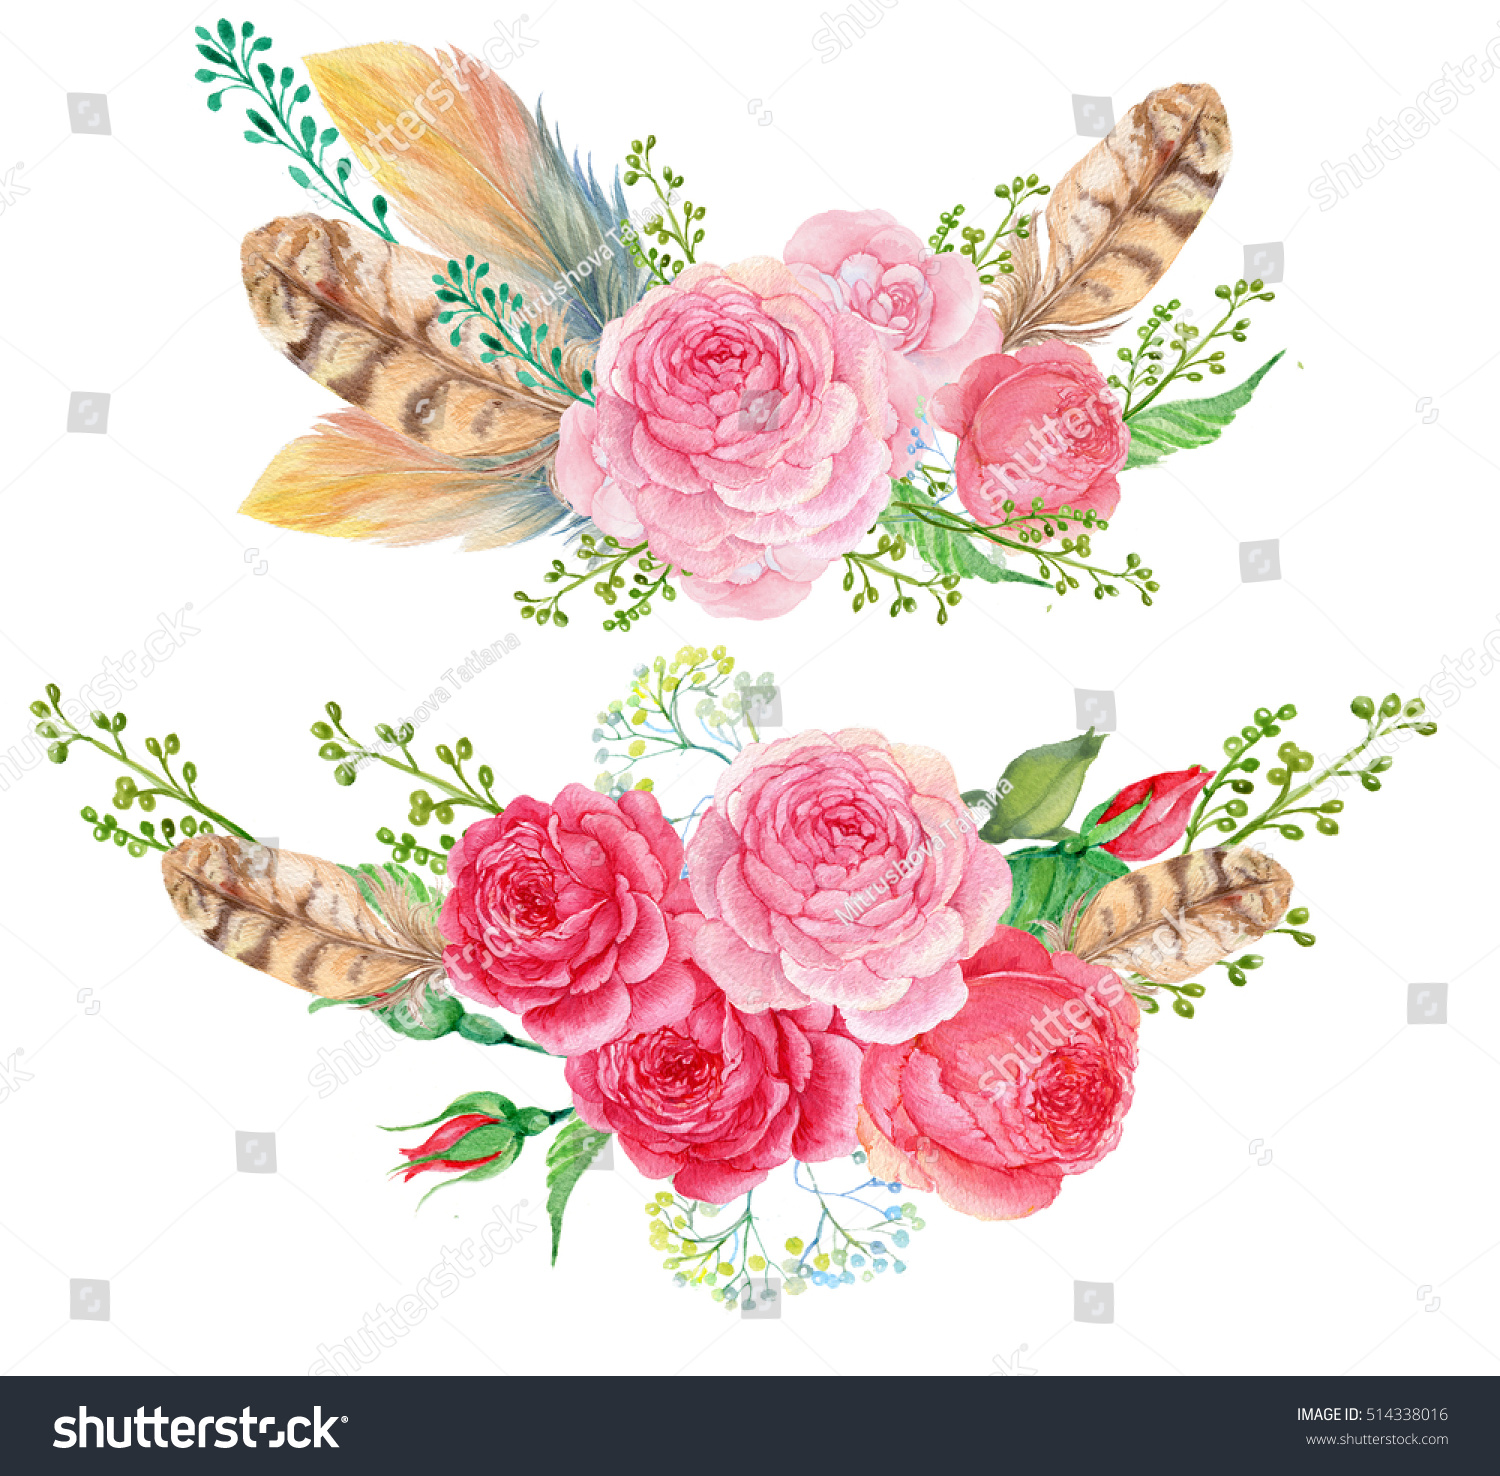 Watercolor floral bouquet feathers and roses composition for watercolor floral bouquet feathers and roses composition for greeting card a bouquet of flowers in watercolor ez canvas izmirmasajfo